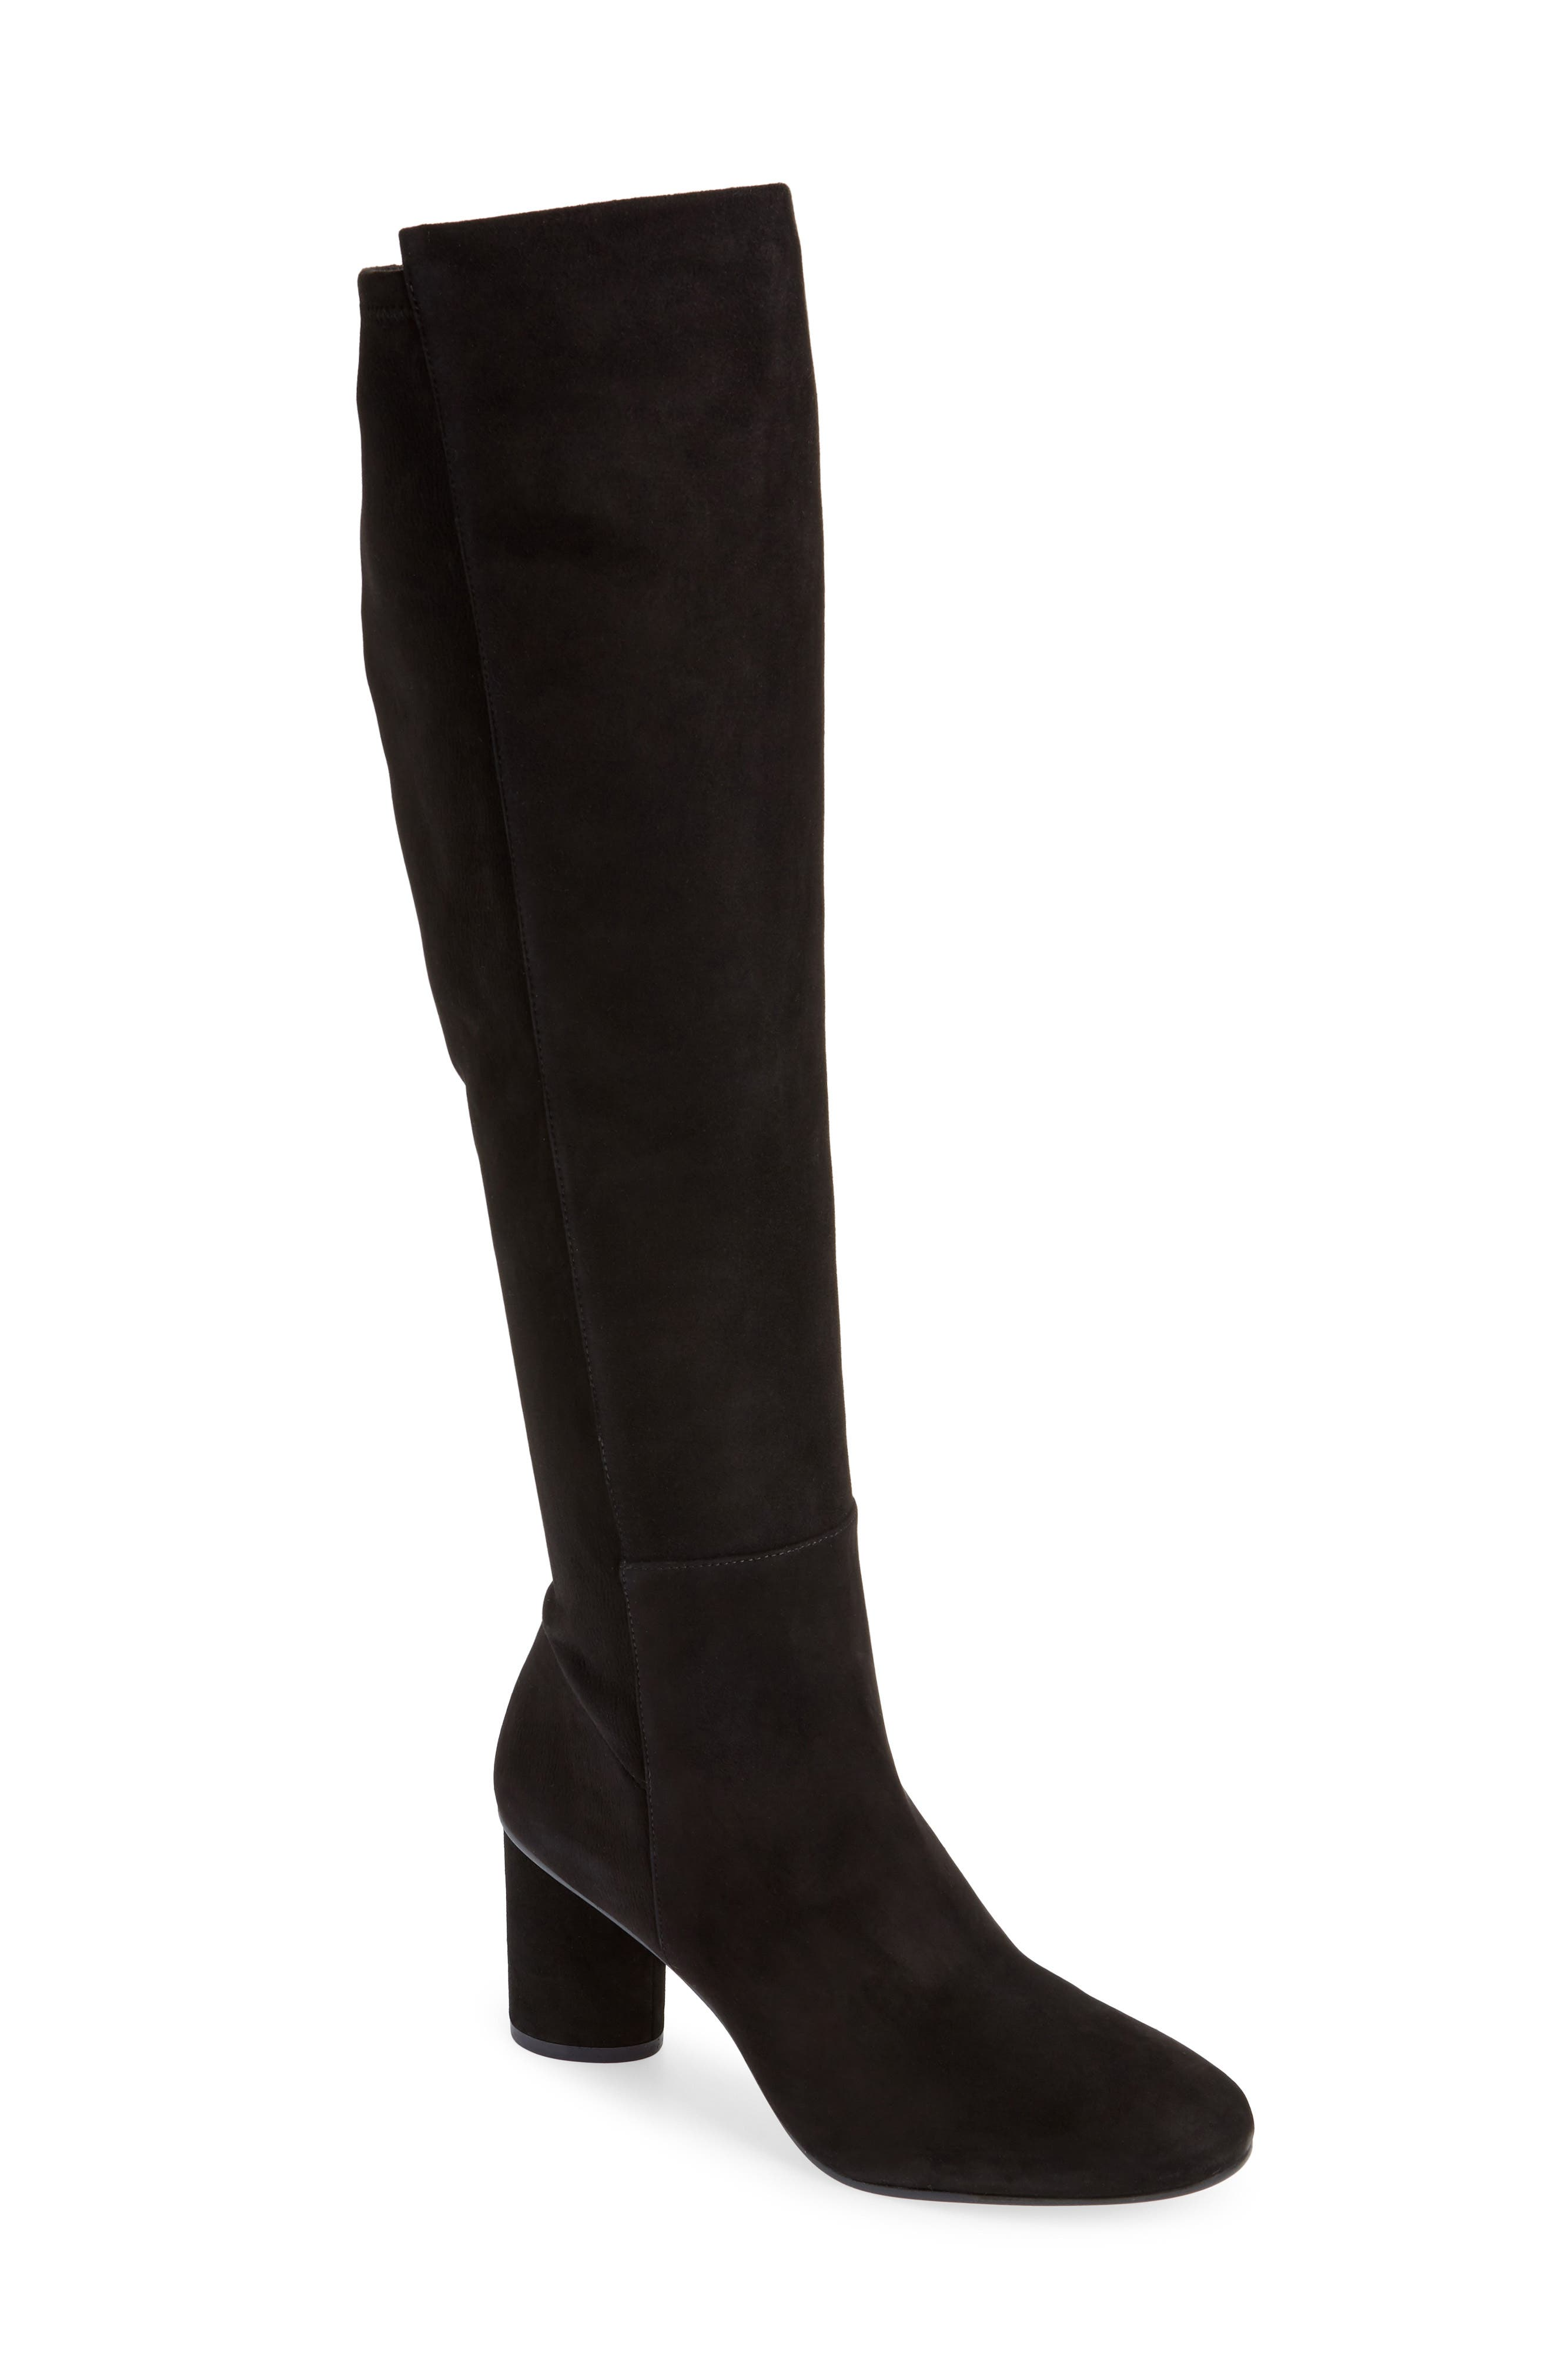 Eloise 75 Over the Knee Boot,                             Main thumbnail 1, color,                             002